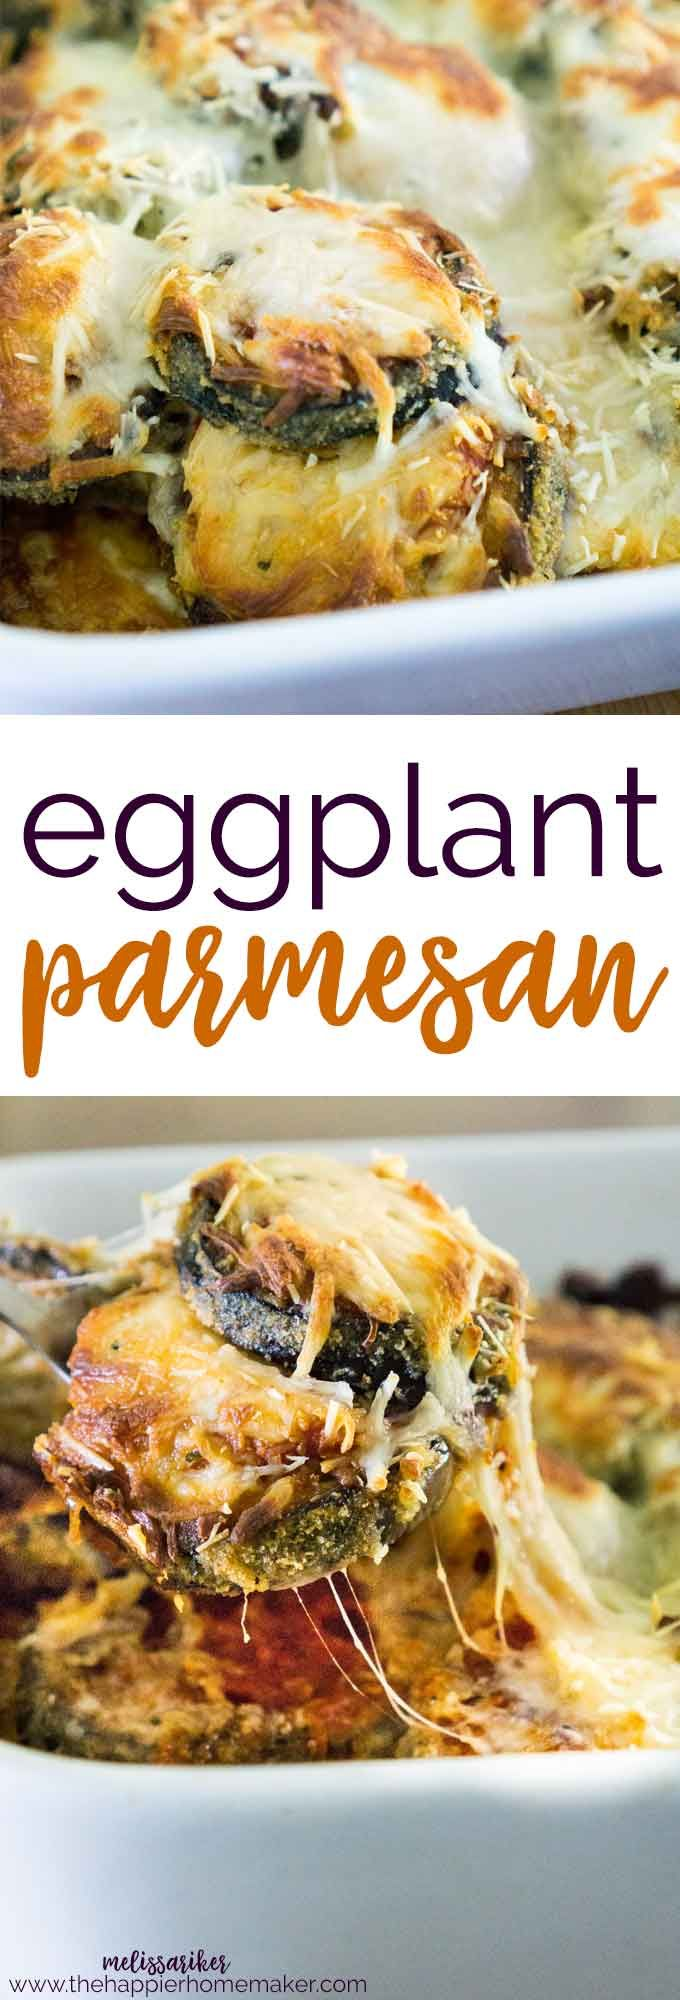 Eggplant Parmesan is a hearty, healthy vegetarian dish that perfect for entertaining